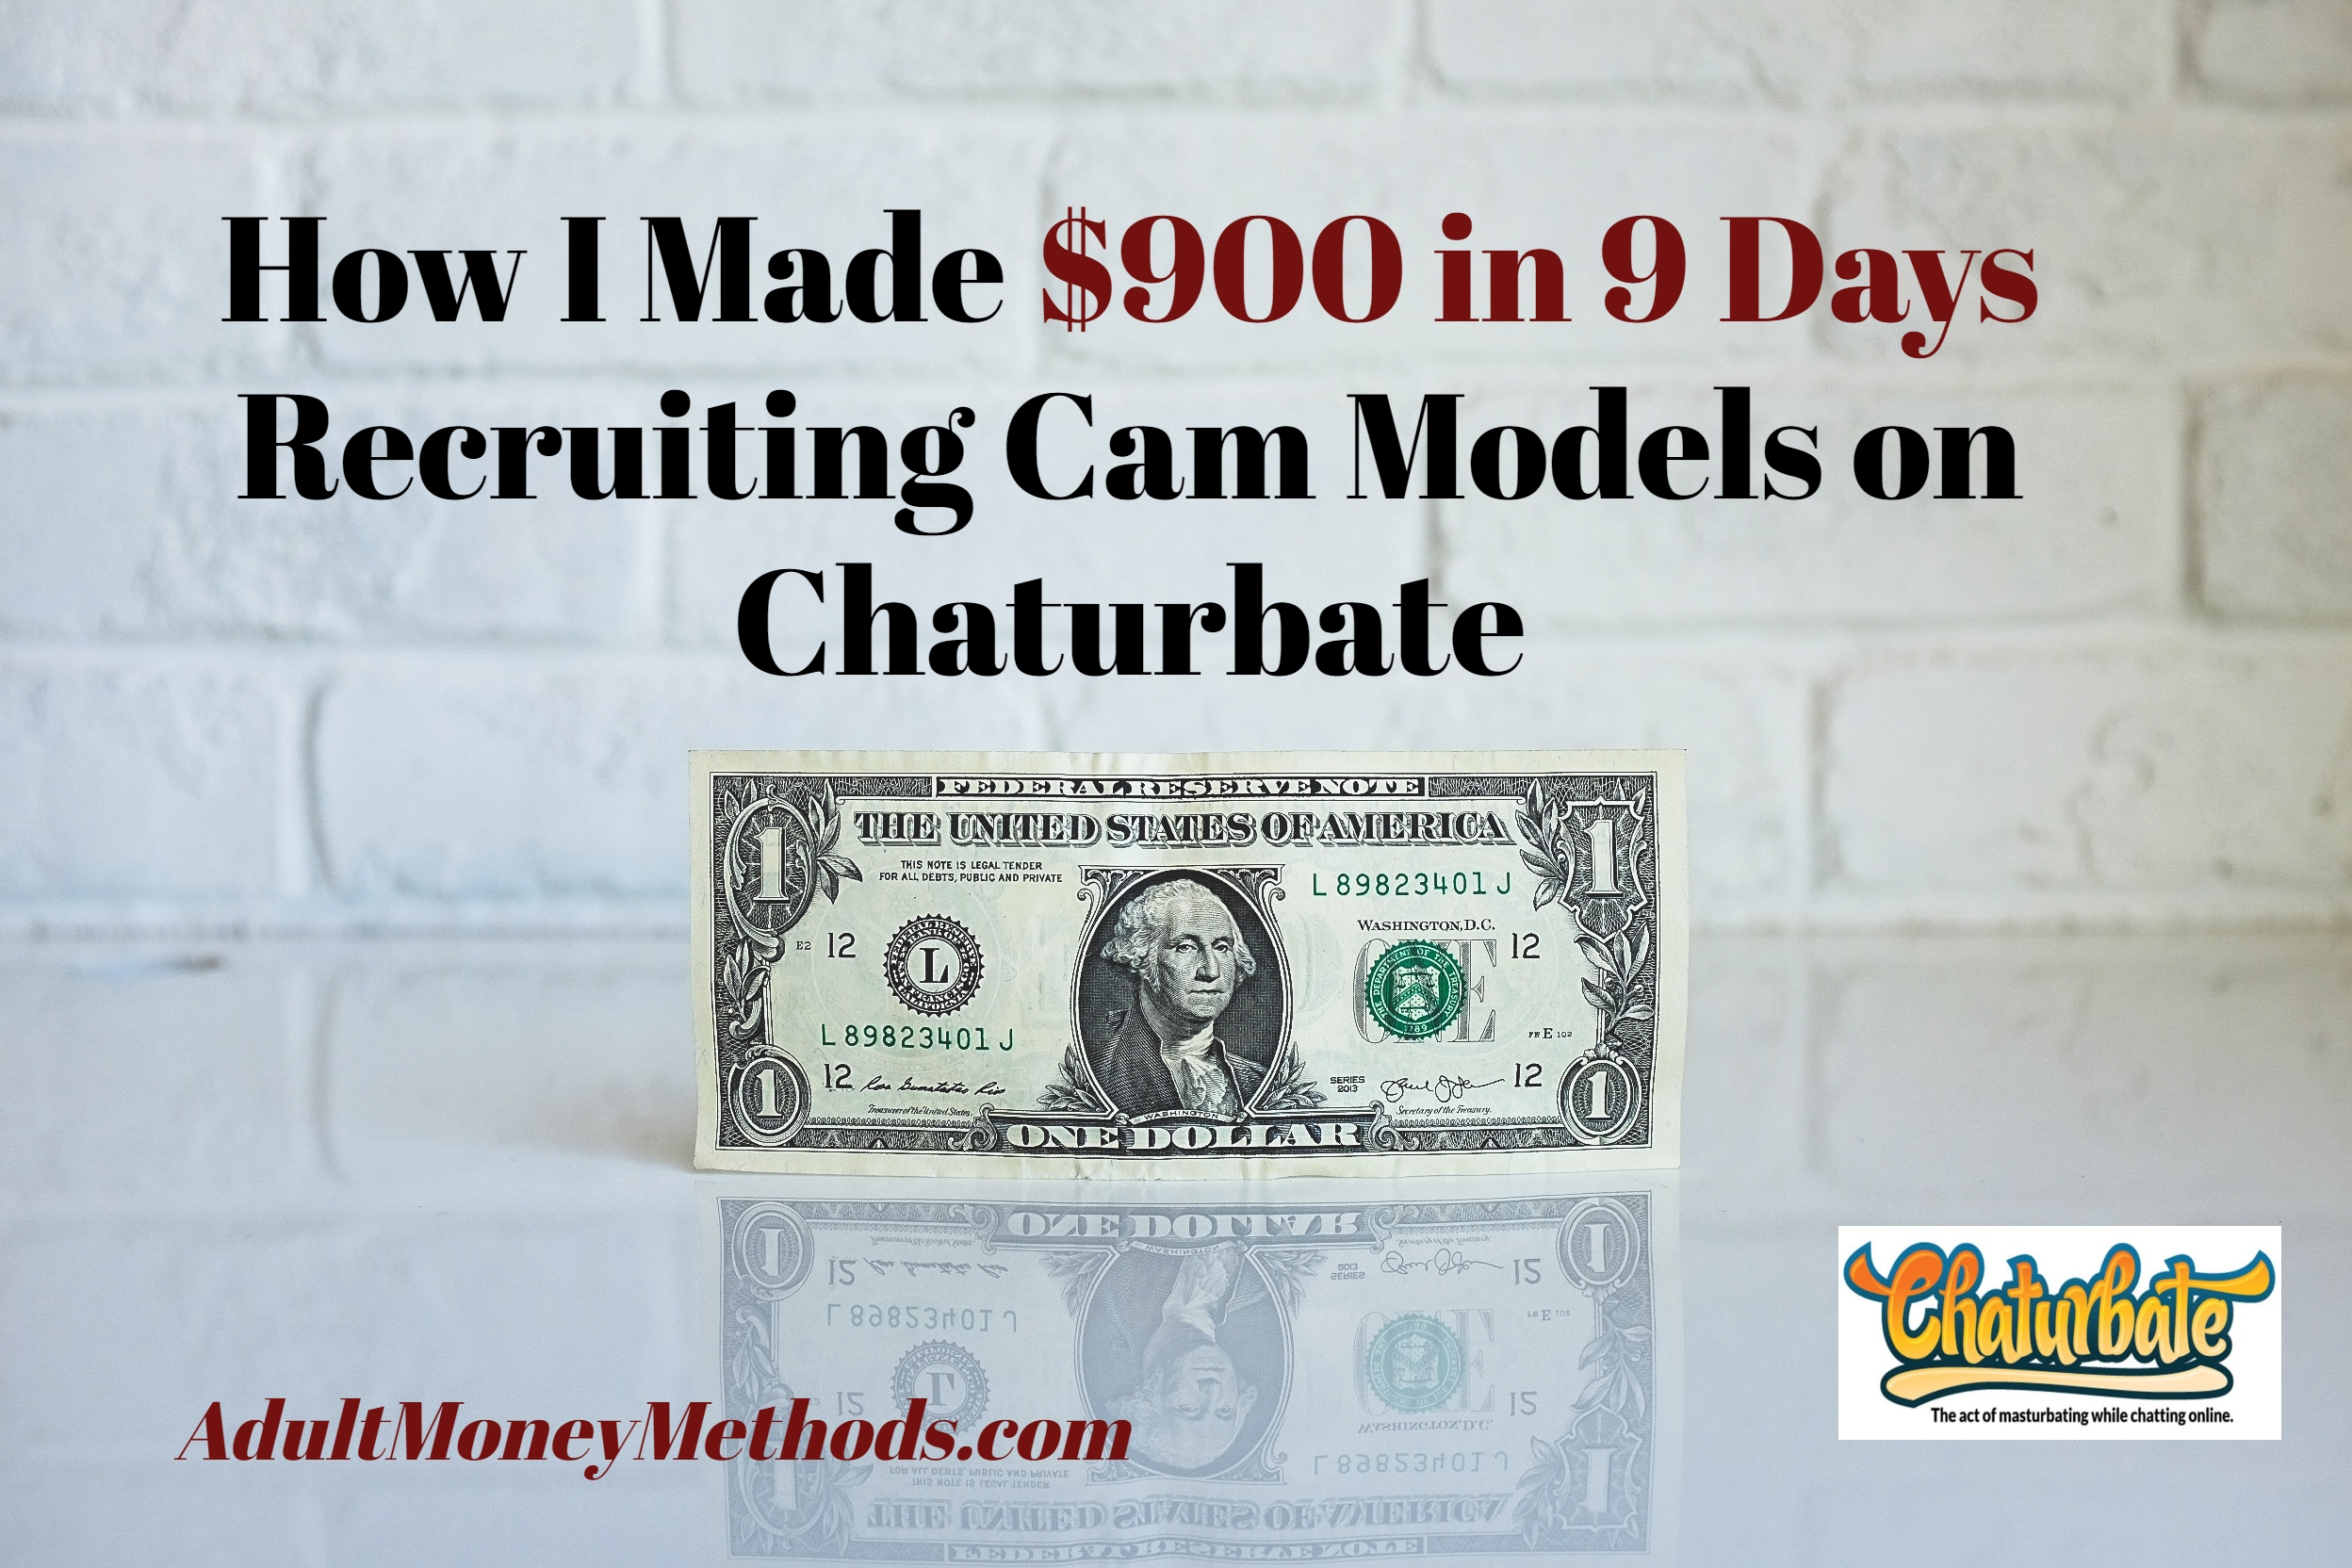 What is The Best Way to Recruit Webcam Models: How I Made $900 In 9 Days Recruiting Cam Models on Chaturbate